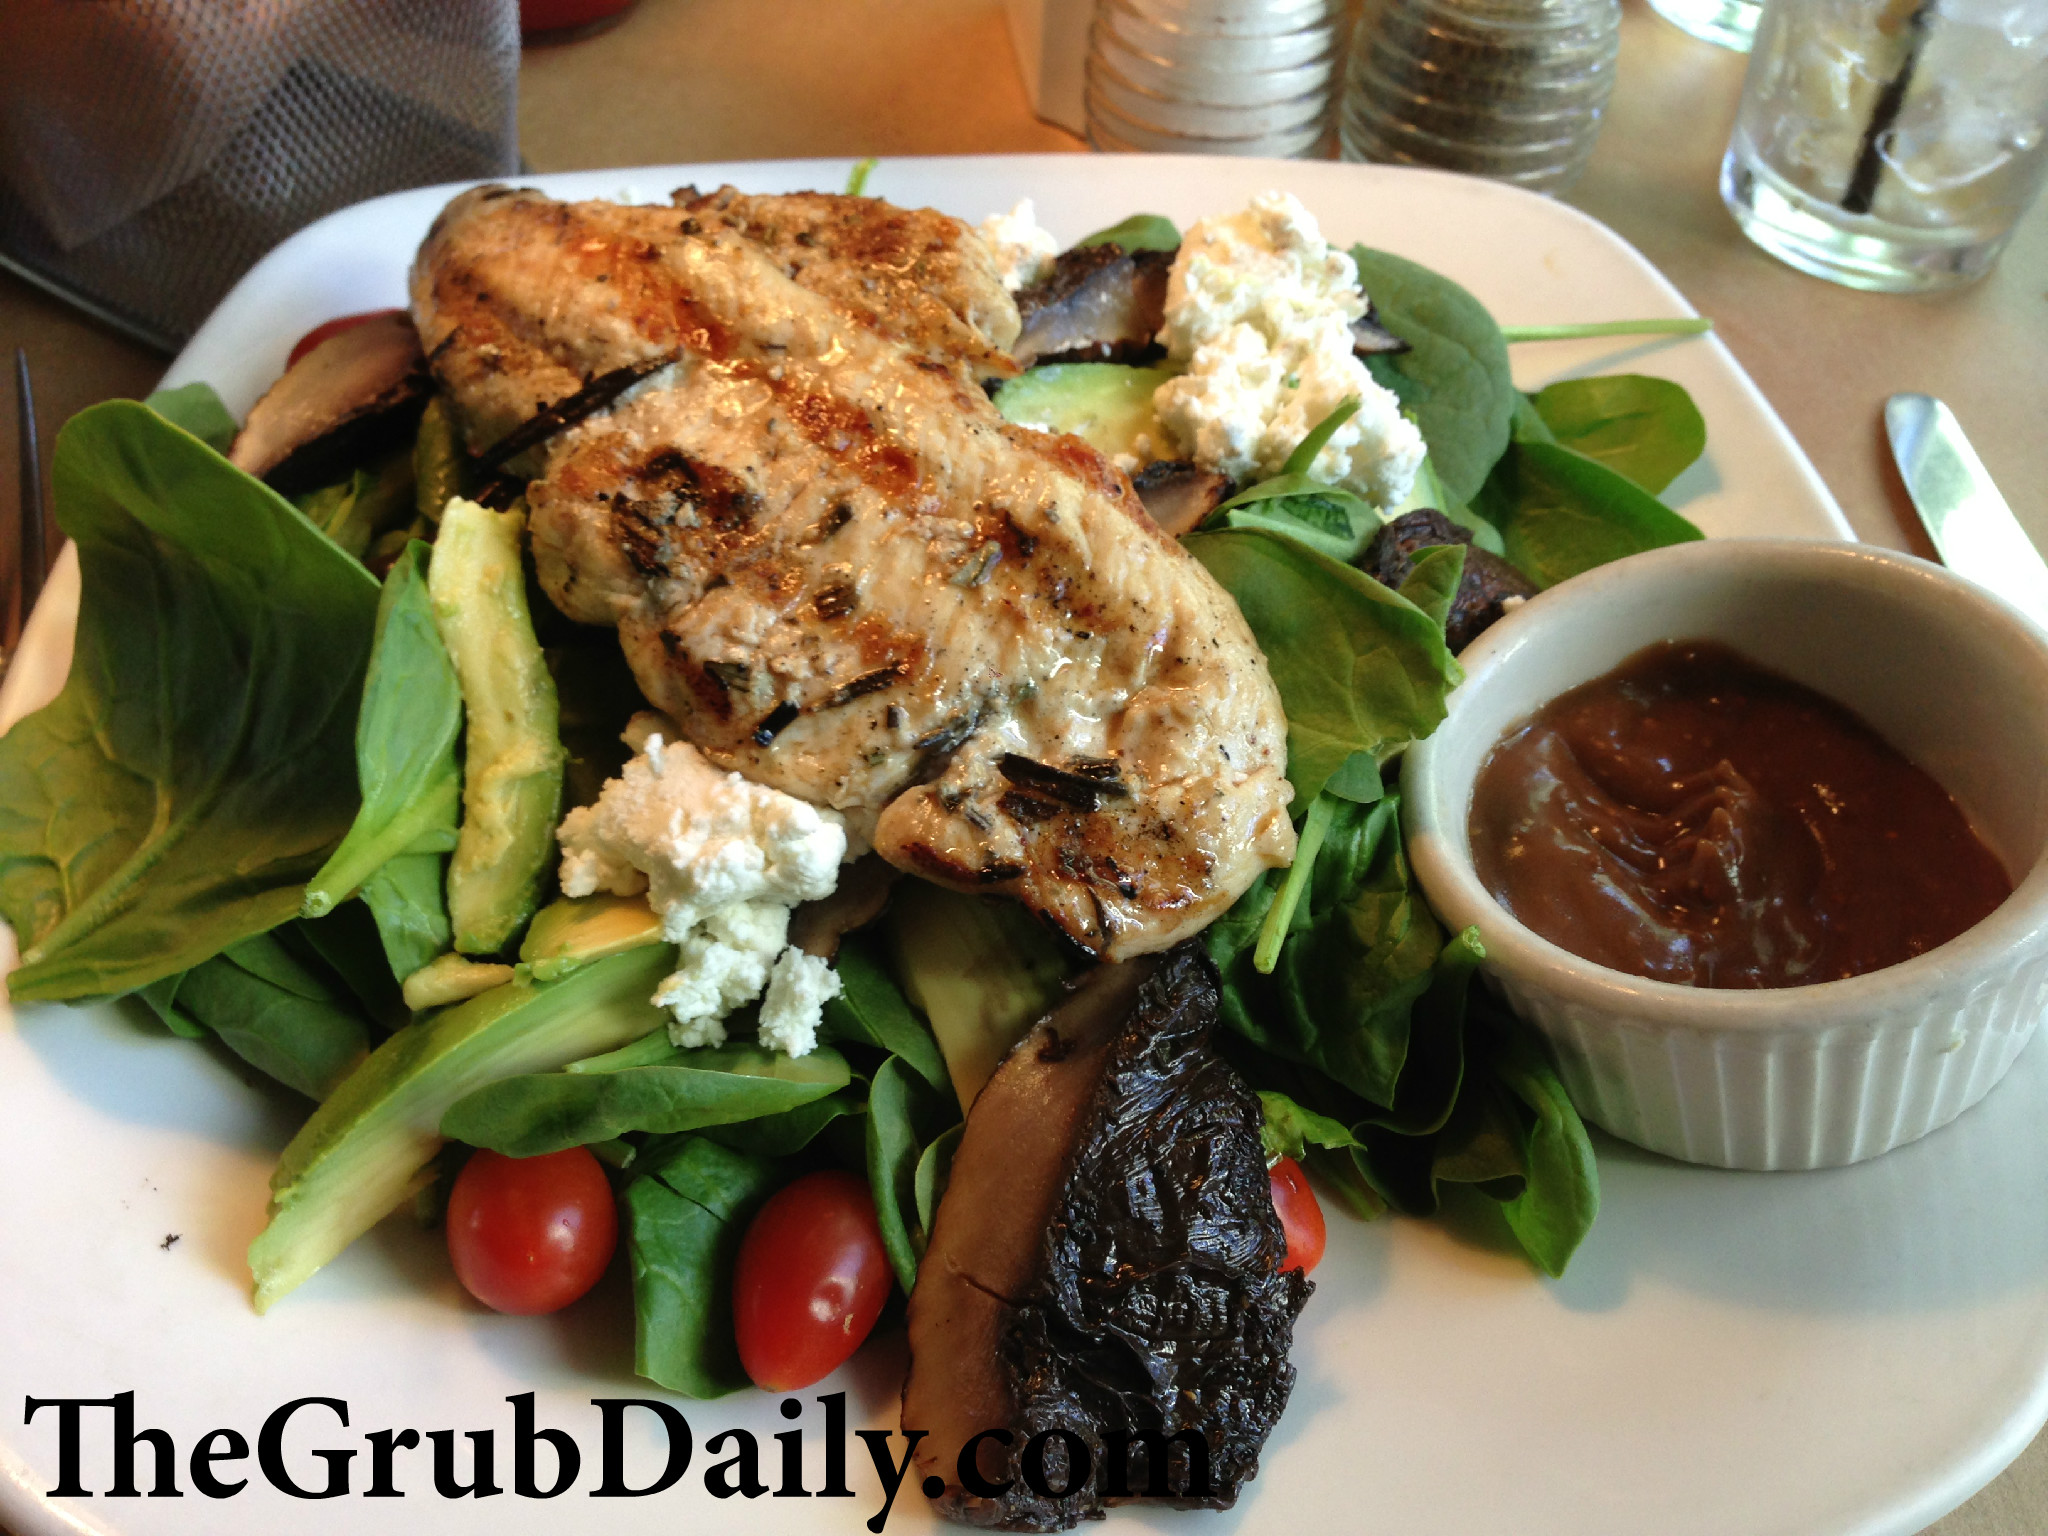 Spinach Salad, which came fully-loaded with grilled marinated chicken ...